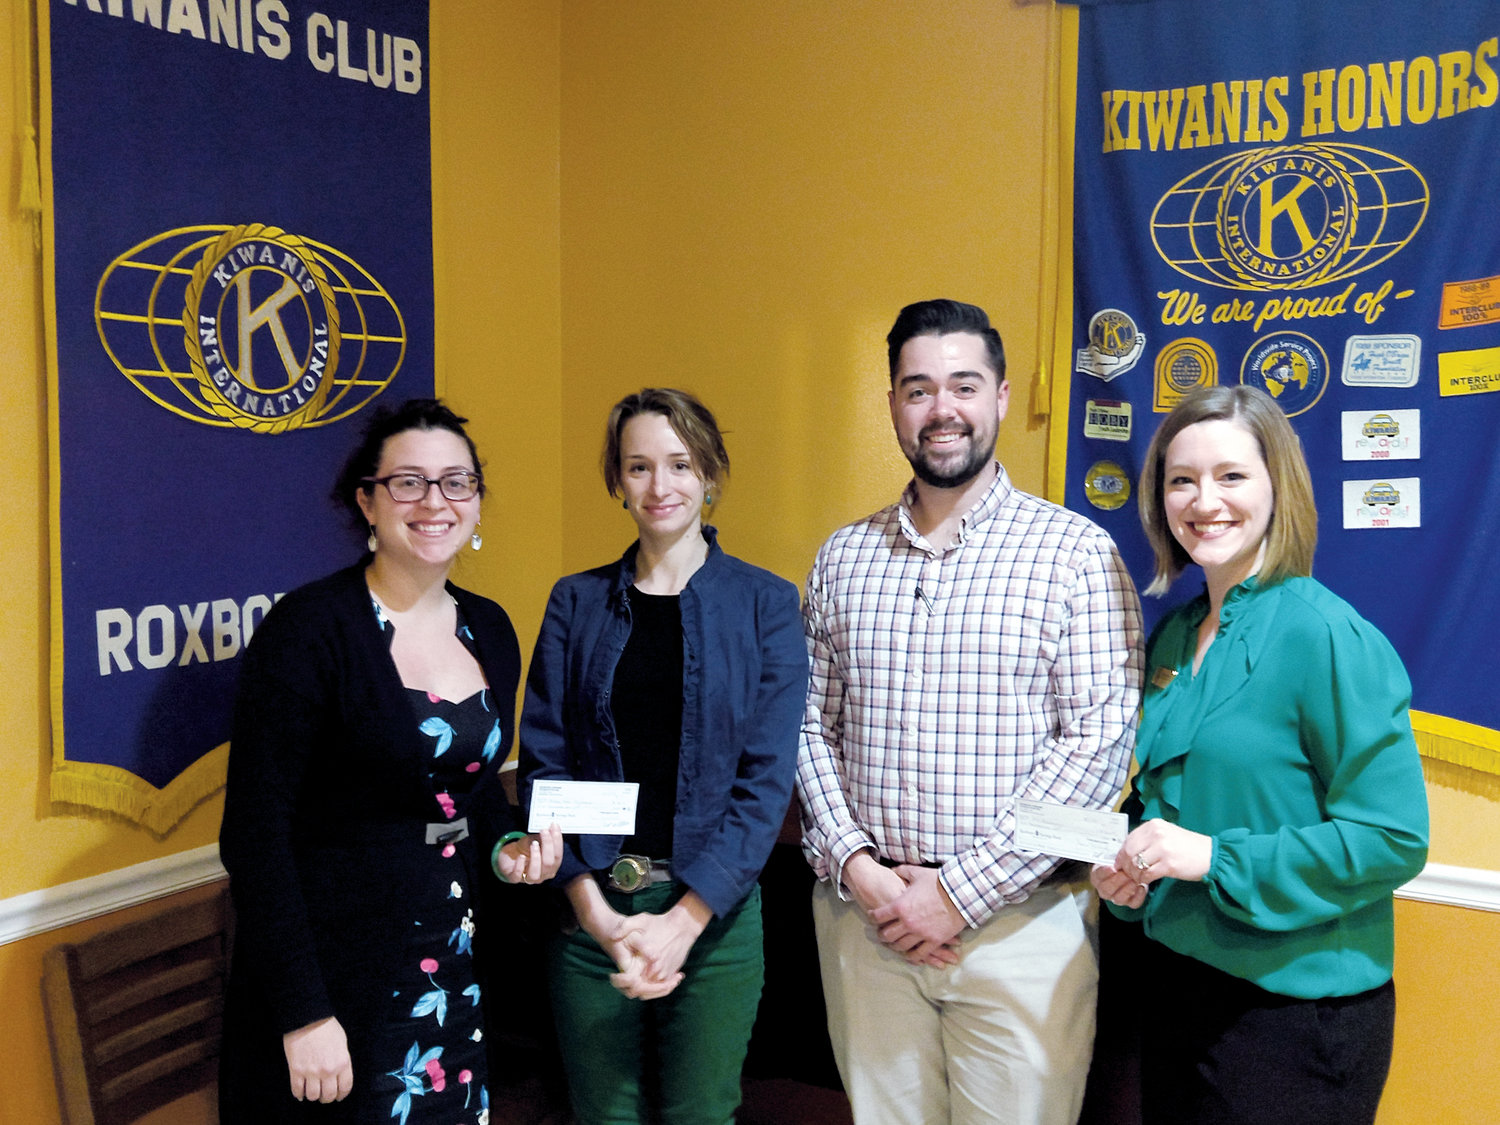 Guests at last week's Roxboro Kiwanis Club meeting included, from left, Erin Ganey Hill, Raleigh Gardner, Chris Forton and Allison Satterfield.